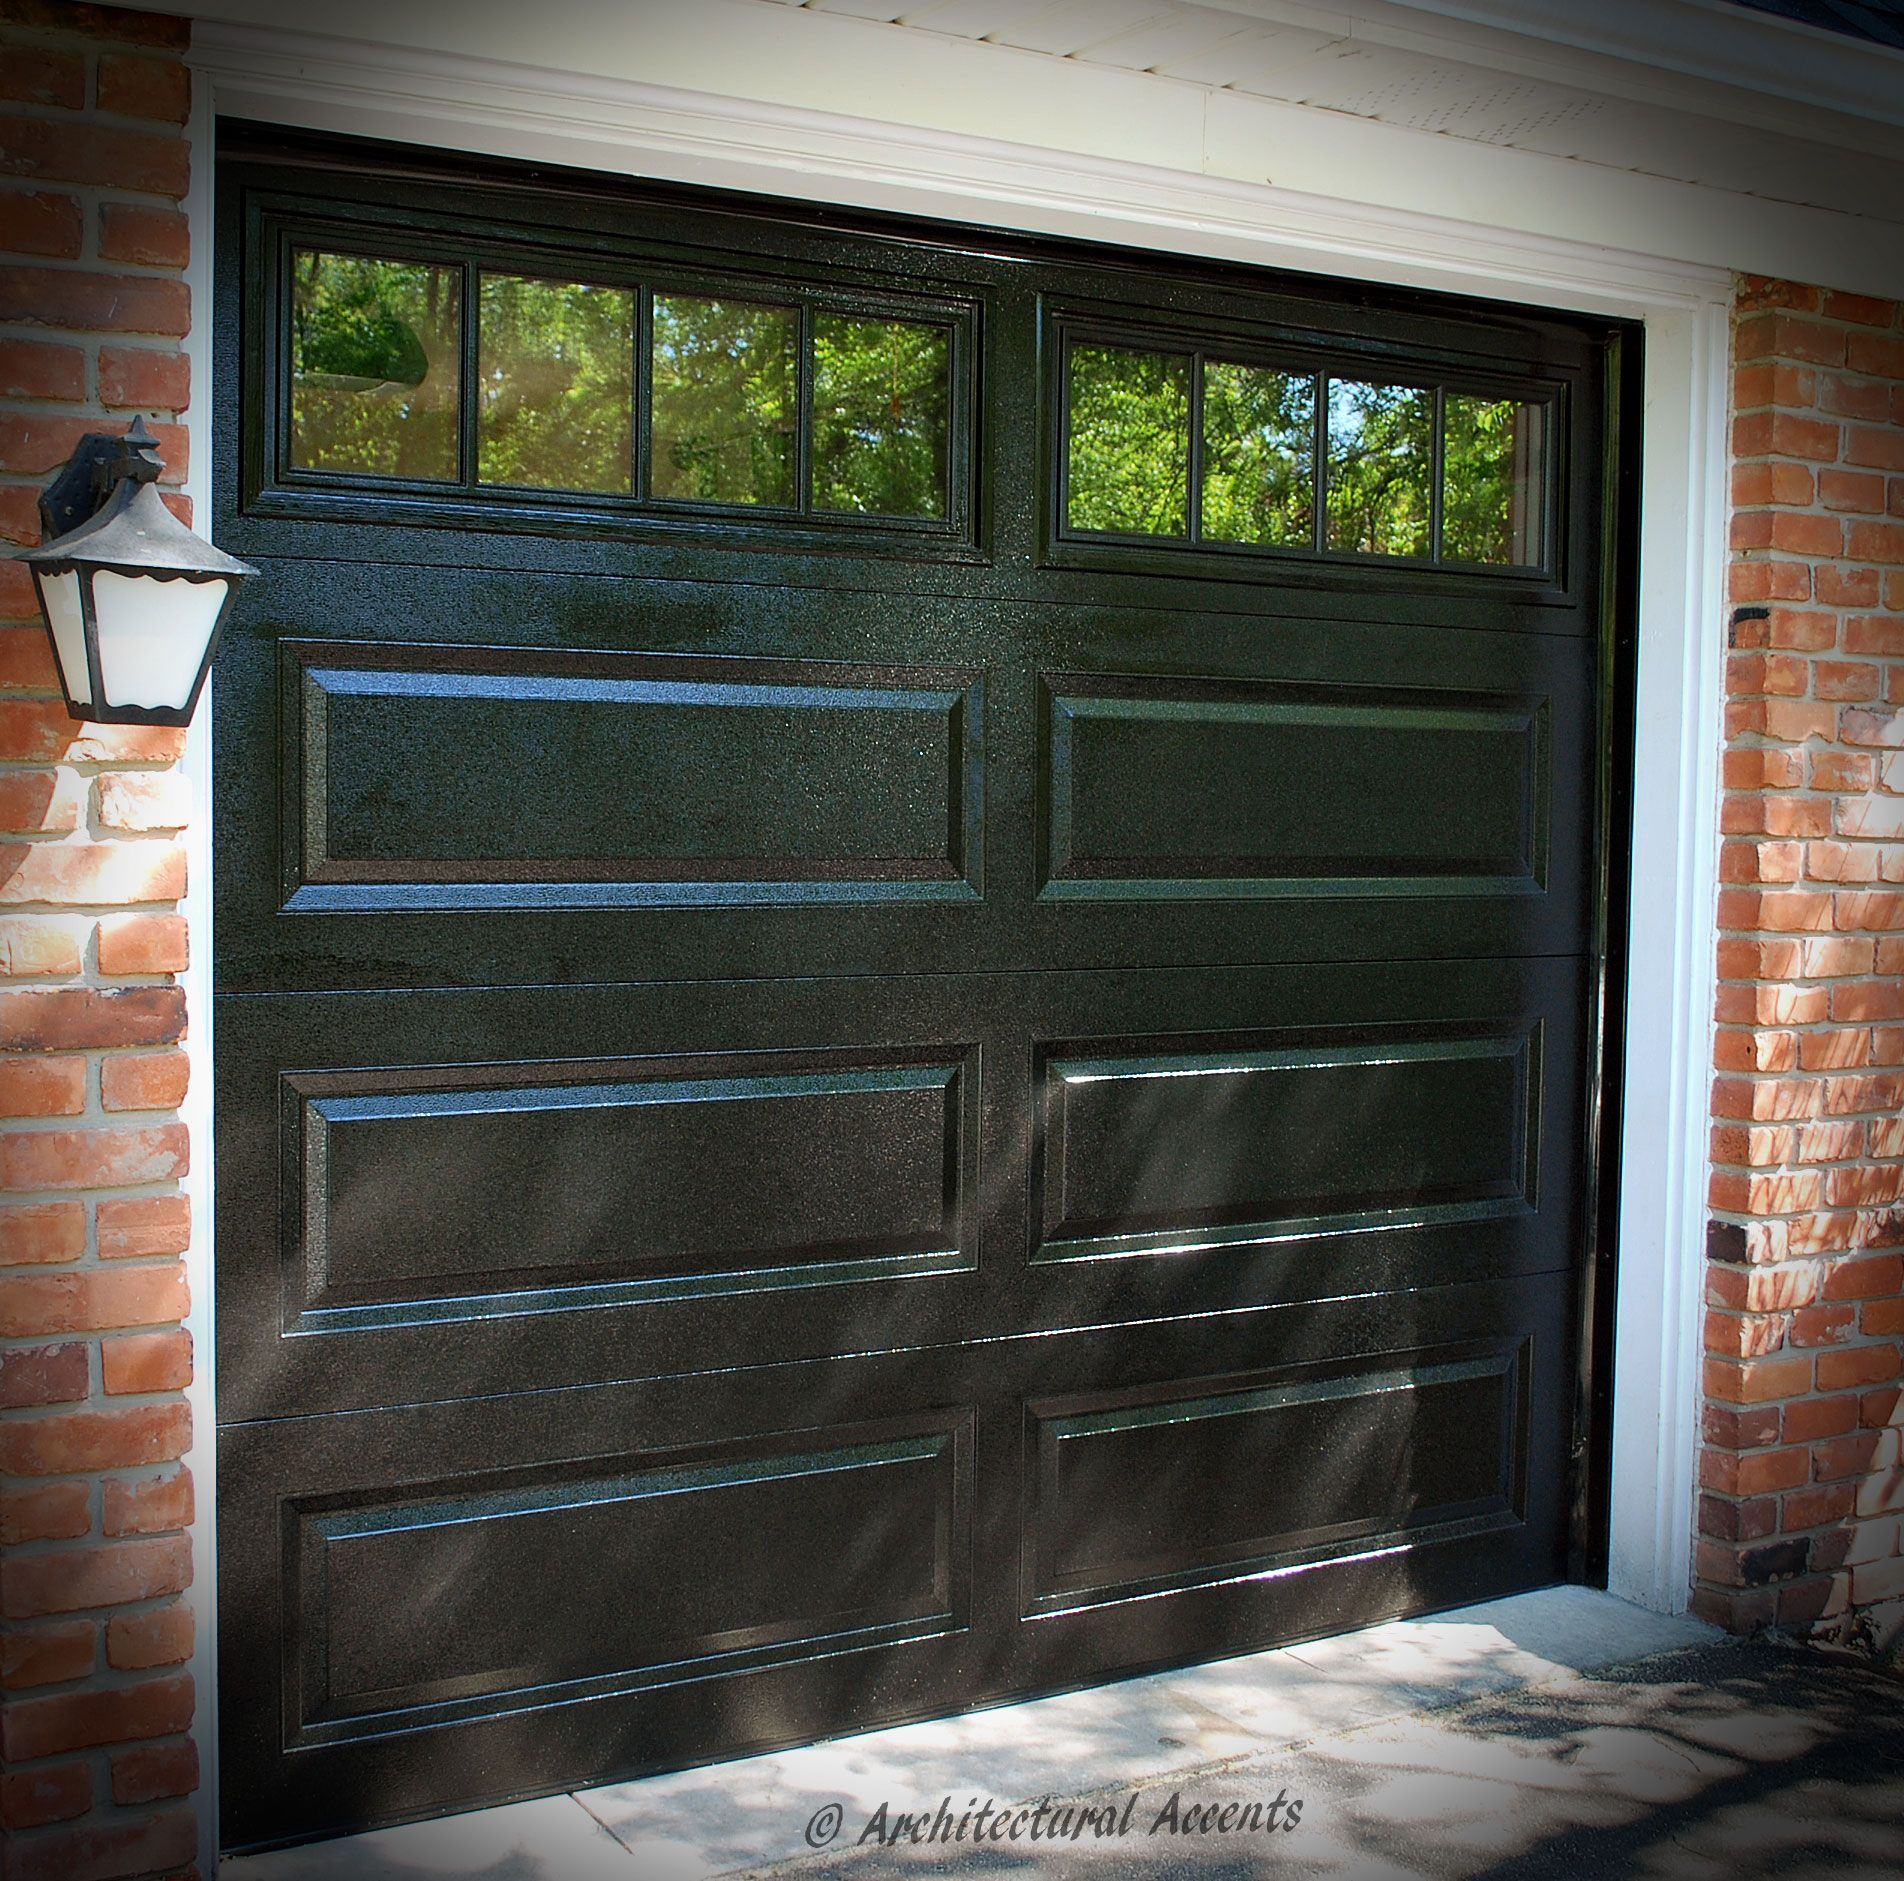 1881 #4A5E2D Black Garage Doors Black Doors Garage Door Colors With Red Brick  pic Black Steel Garage Doors 36511904